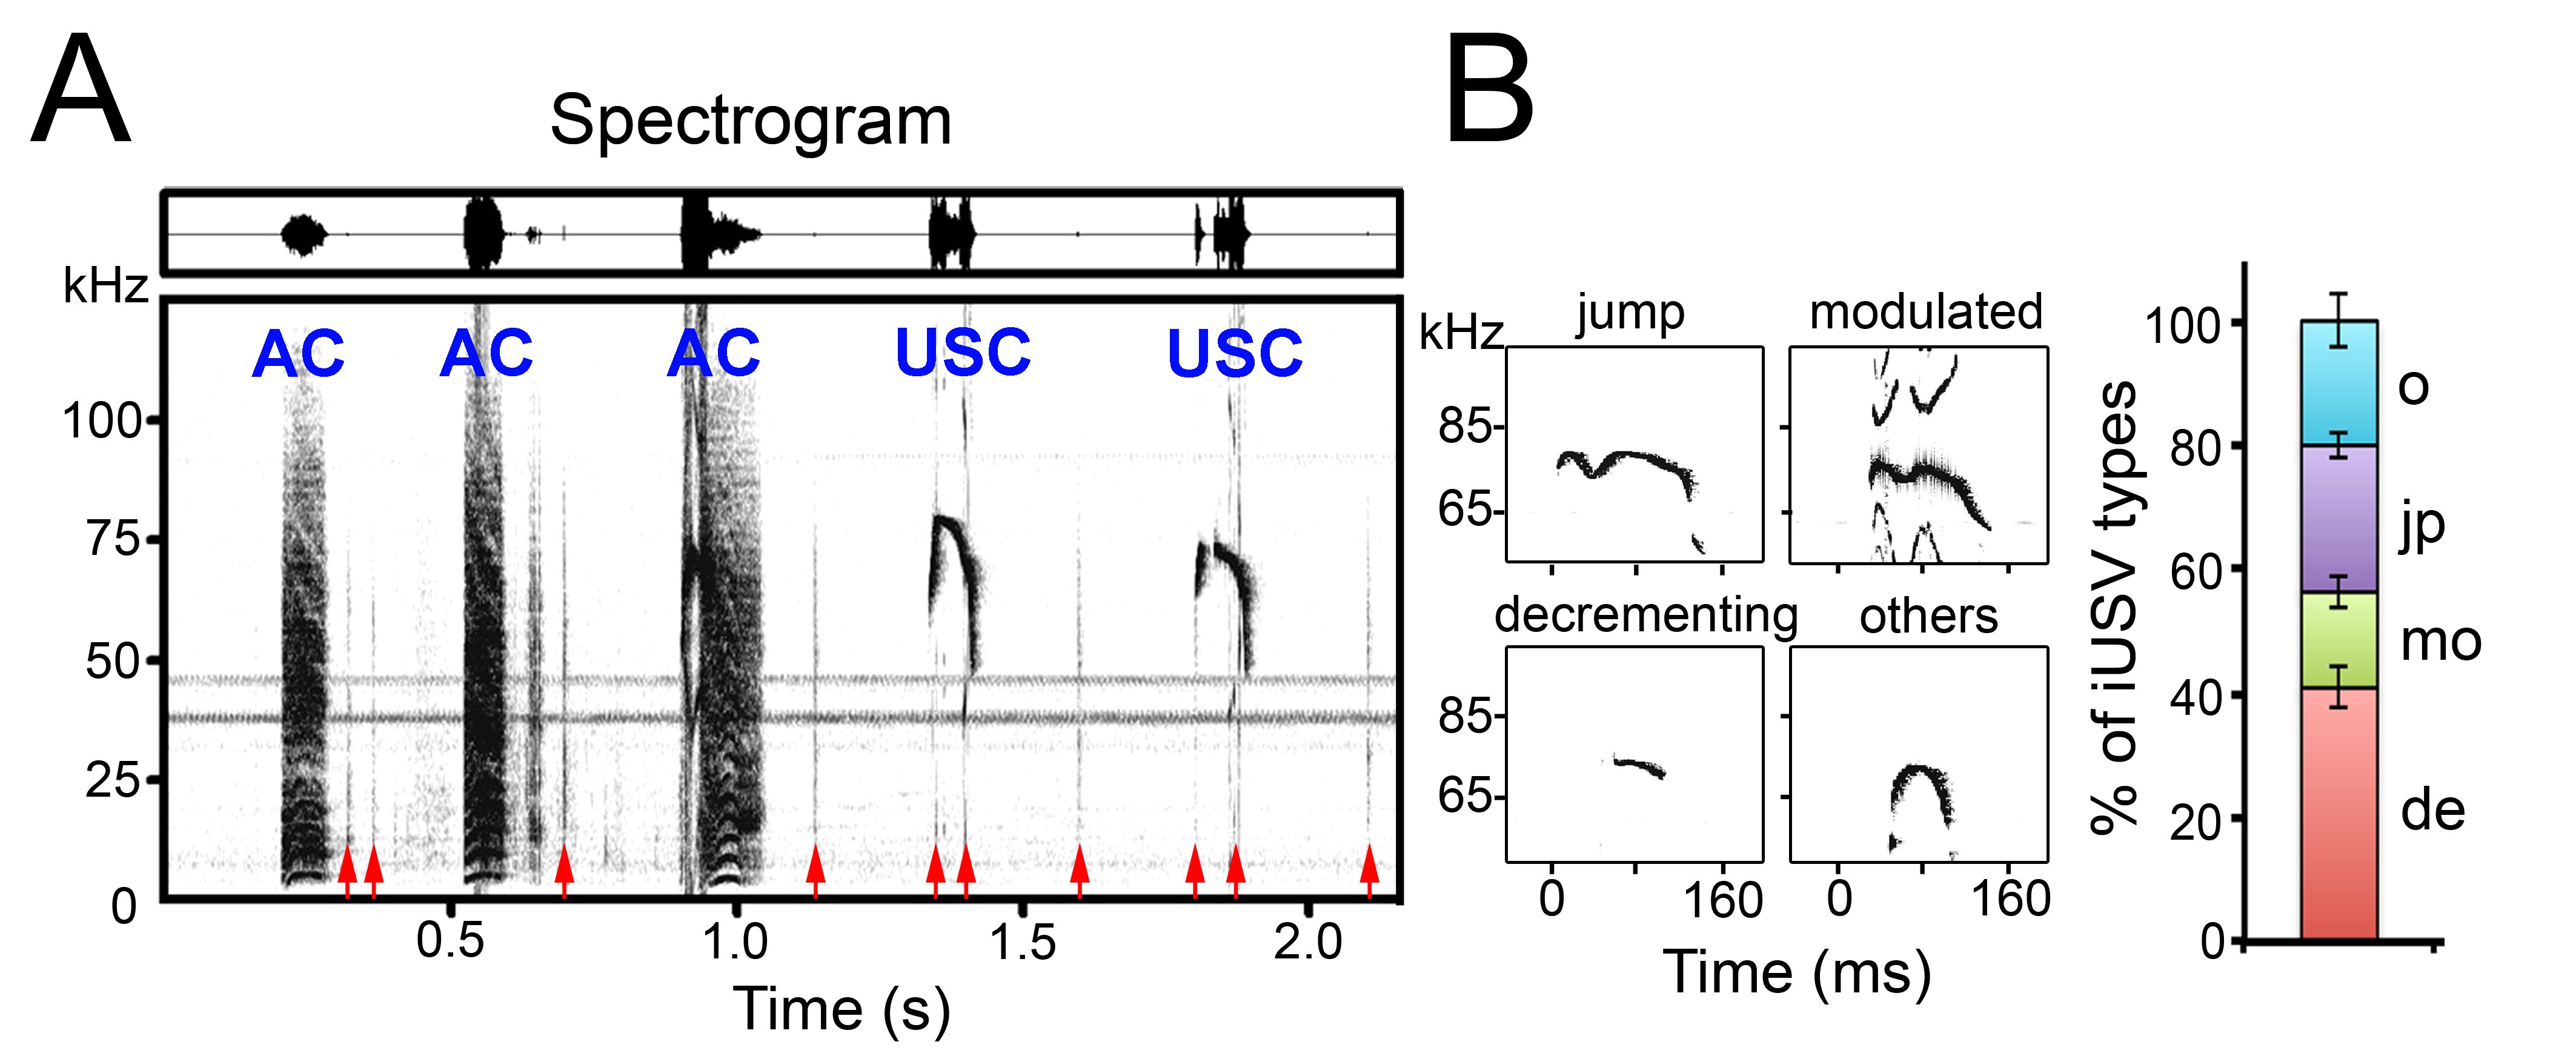 Figure 3. Vocal repertoire of neonatal mice. (A) Spectrogram (bottom) and waveform (top) traces illustrating audible (AC) and ultrasonic (USC) calls elicit by a newborn mice upon mechanical (touch) stimulation. In addition to audible and ultrasonic calls, newborn mice produce short non-vocal sounds called clicks (red arrows). (B) On the left, representative spectrograms of single ultrasonic calls produced during isolation. Note that ultrasonic calls are complex and can be classified according to their shapes and frequency in jump (jp), modulated (mo), decrementing (de) and other (o) calls. On the right, percentage of jump, modulated, decrementing and other ultrasonic calls in newborn mice isolated from the litter.